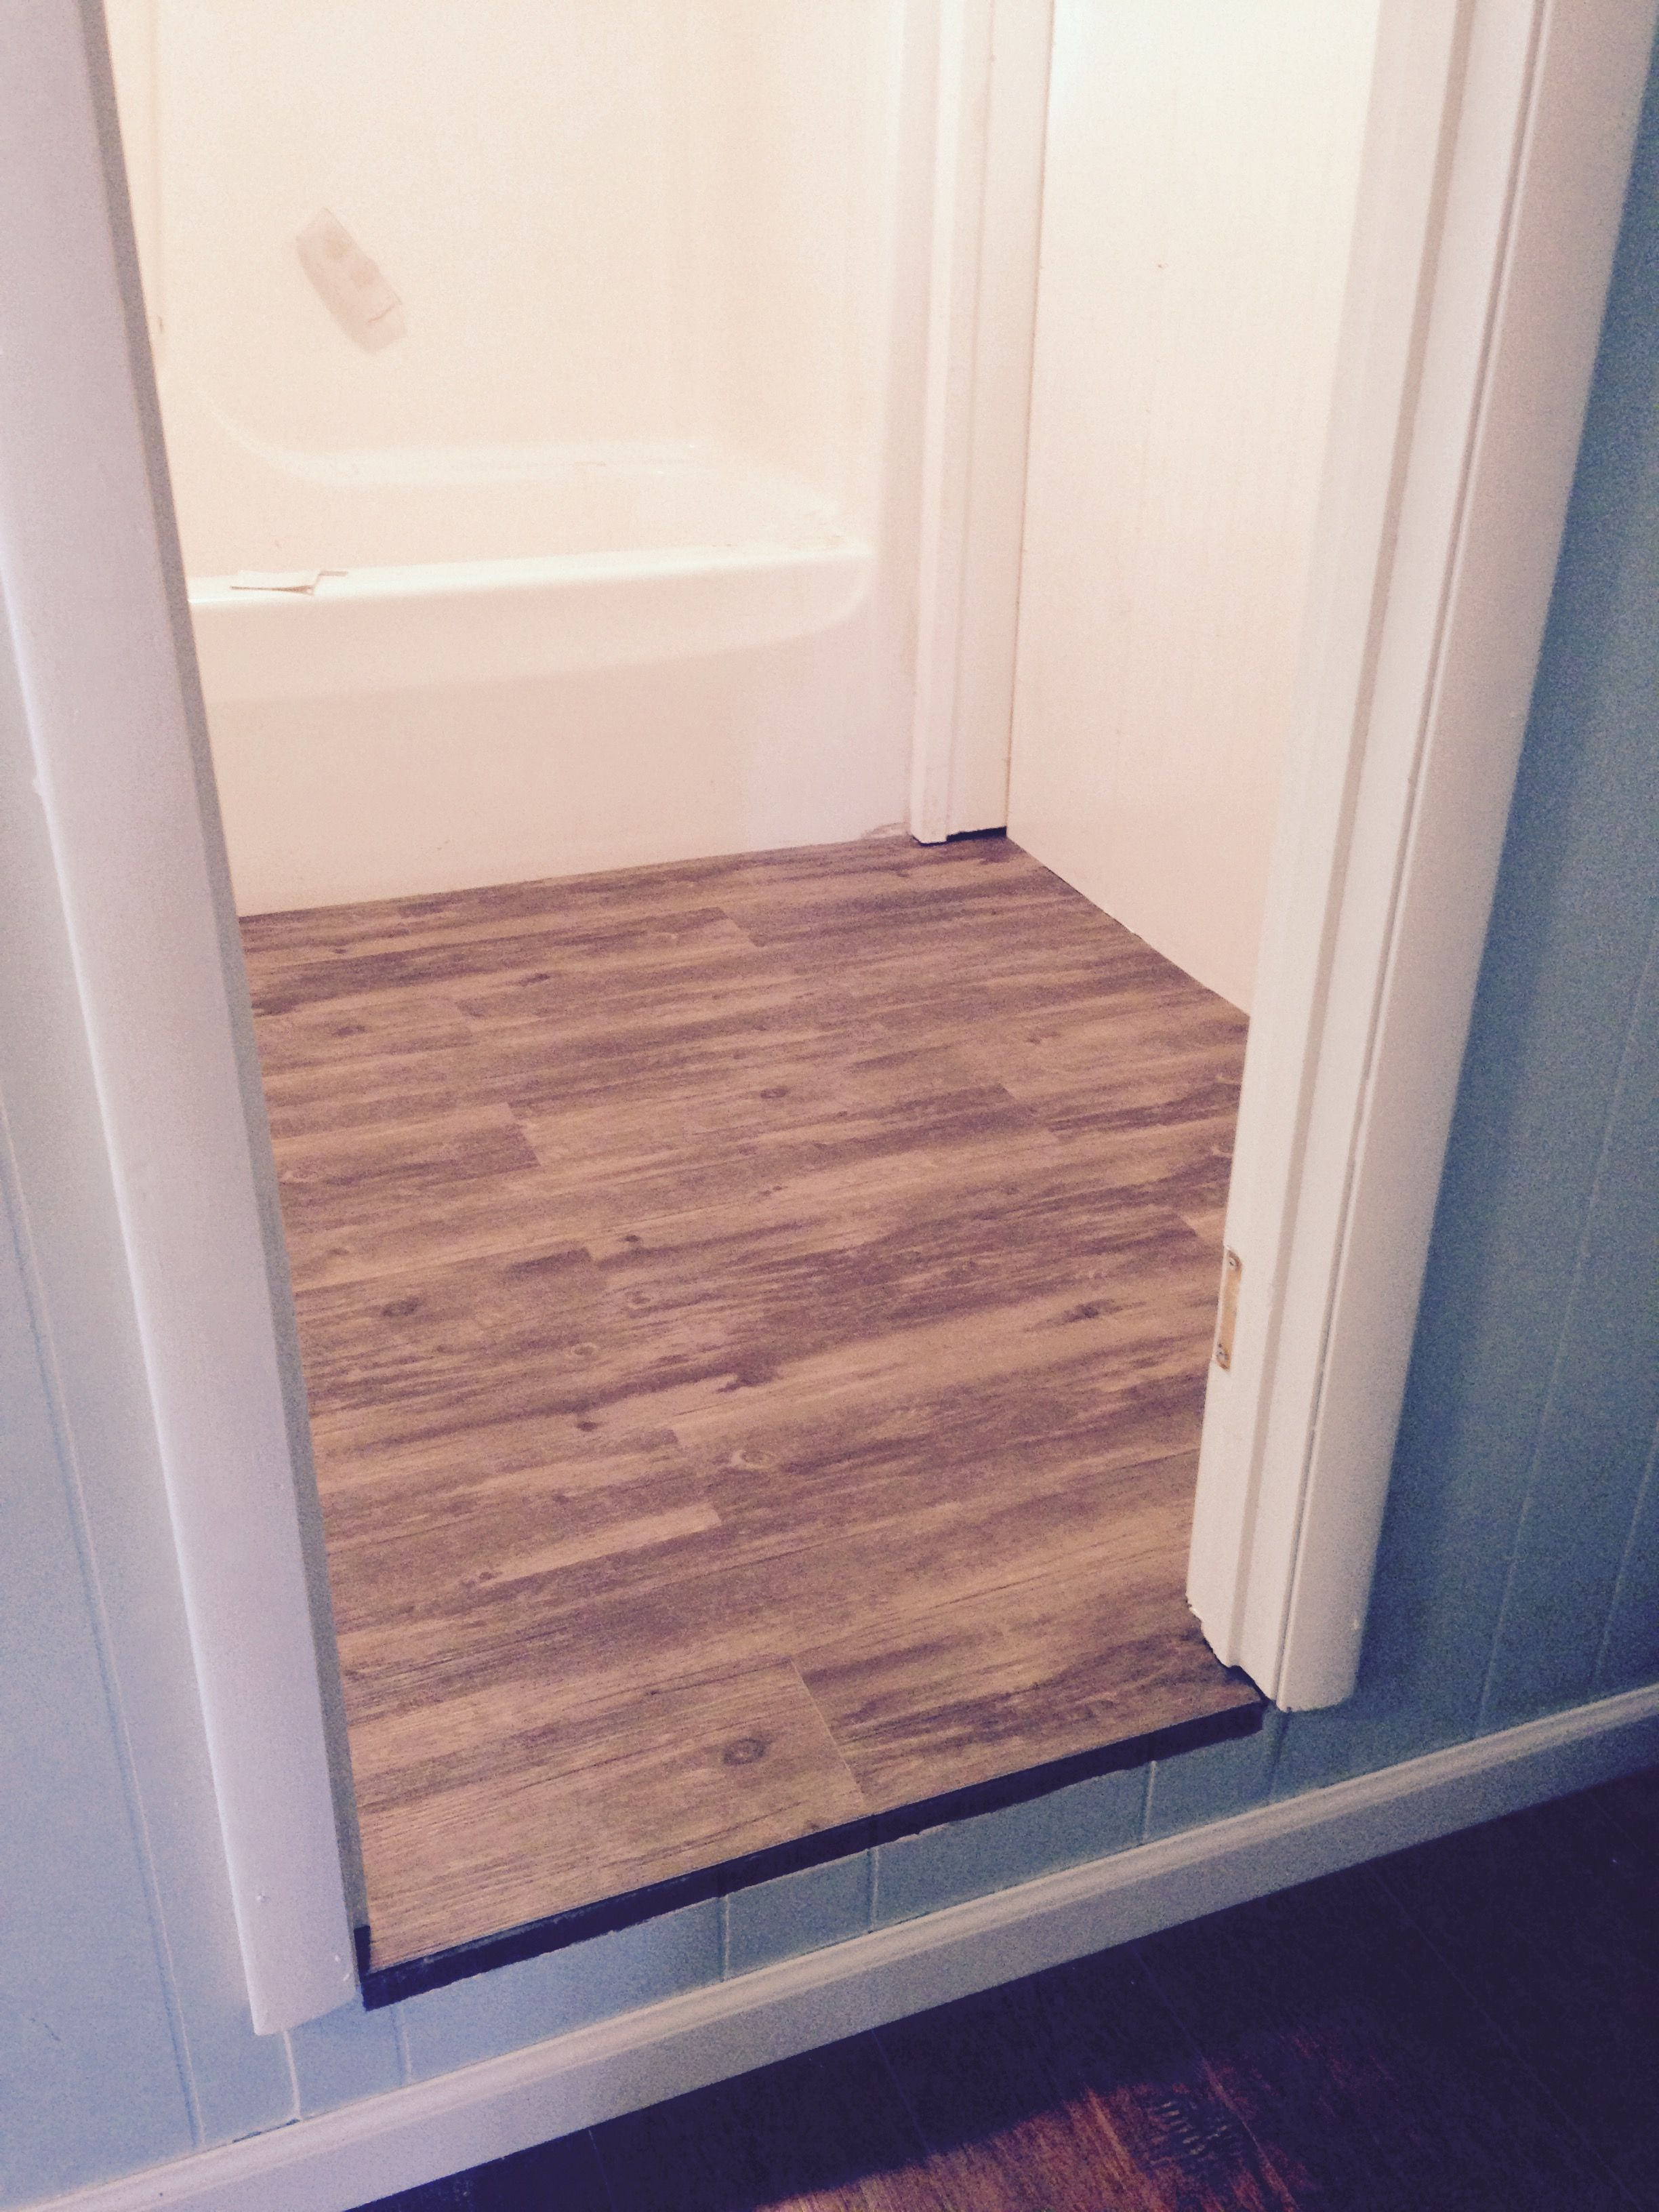 Dublin pine vinyl flooring on small bathroom remodel ...